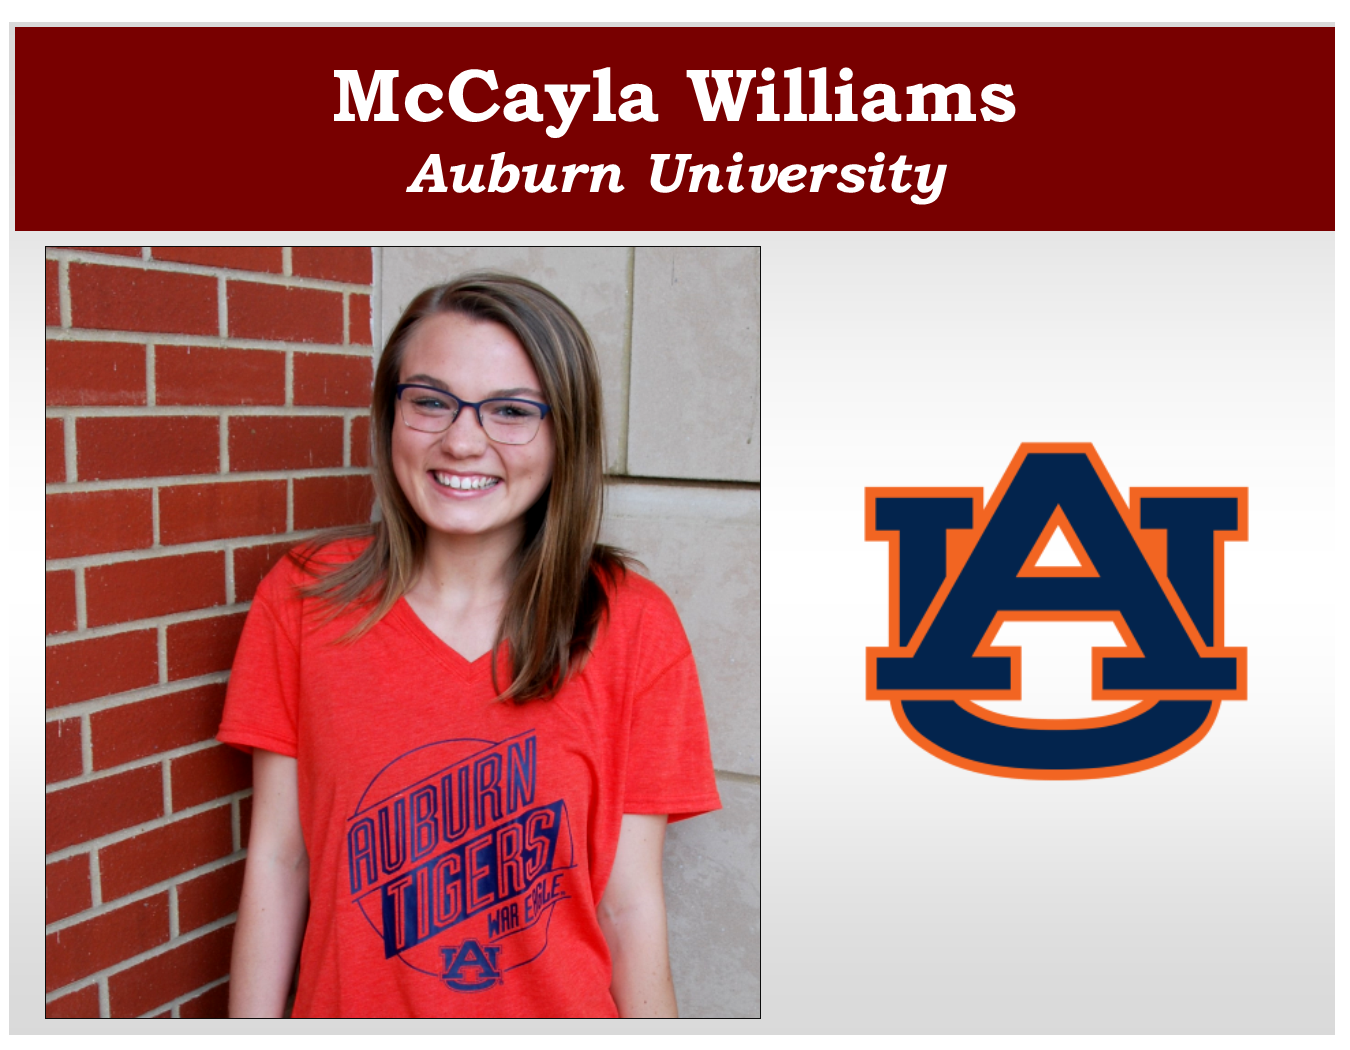 McCayla Williams